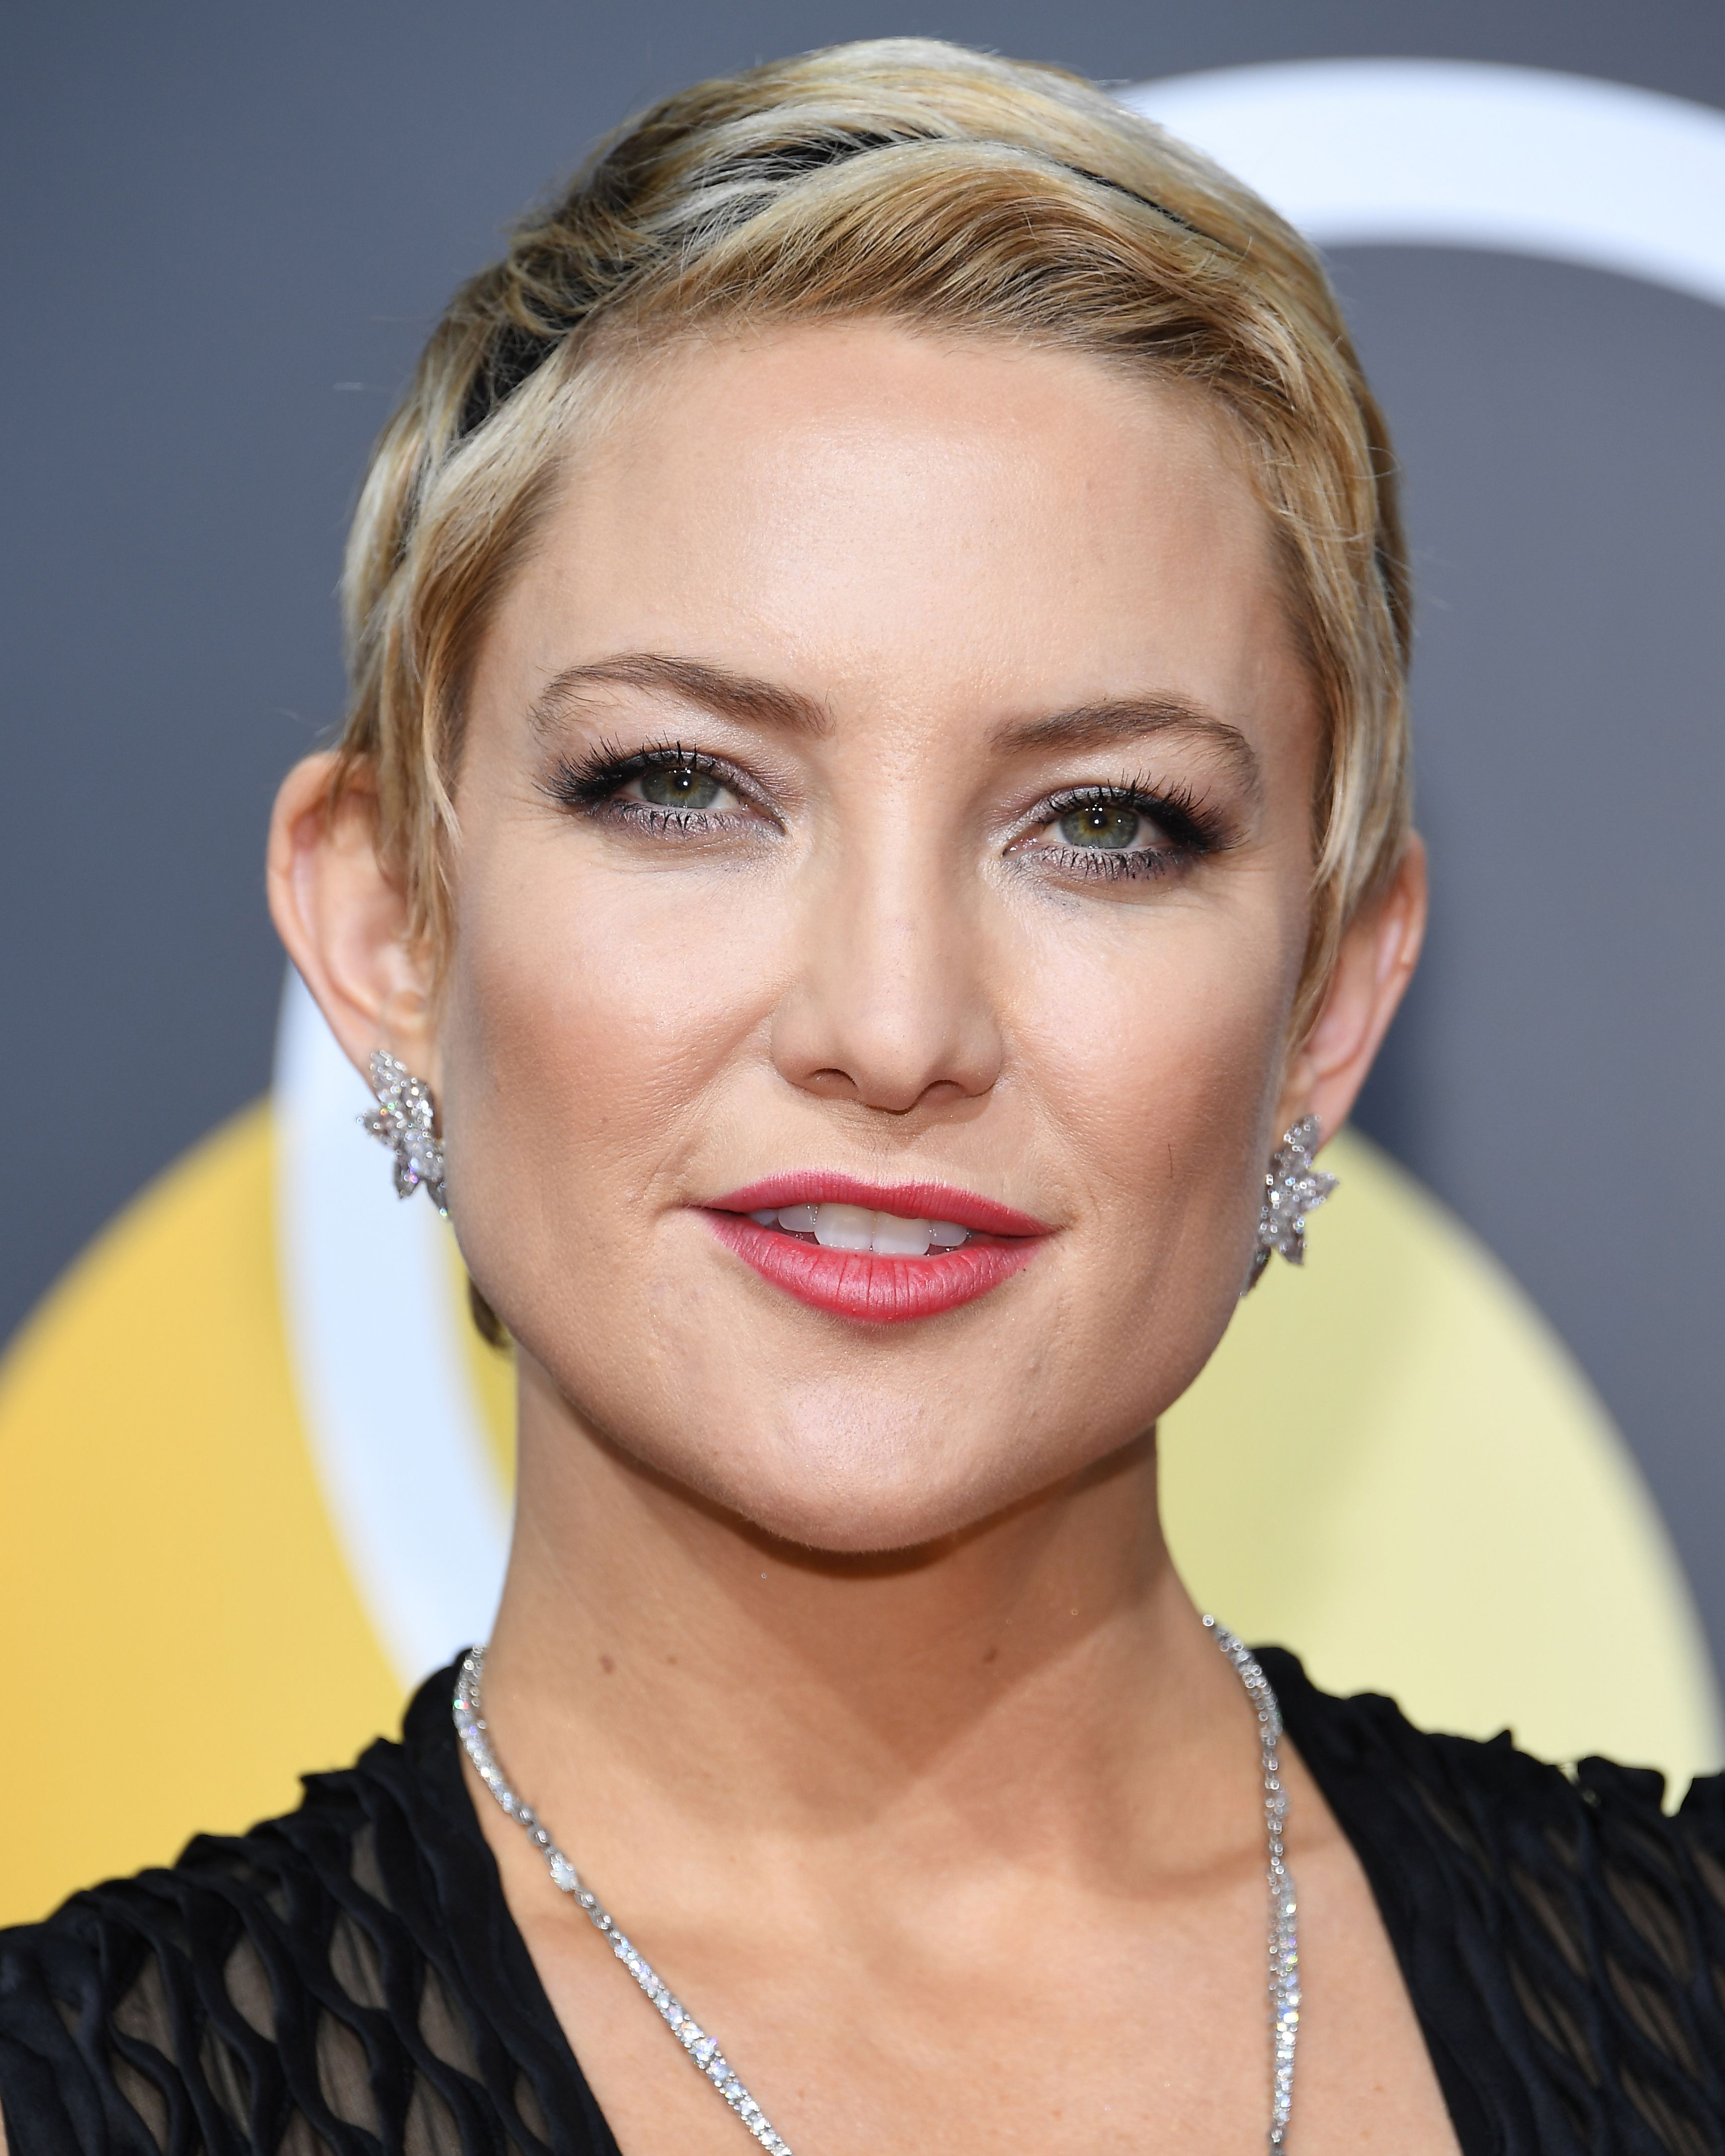 32 Best Short Hair Styles – Bobs, Pixie Cuts, And More Celebrity Regarding Short Hairstyles For Small Faces (View 24 of 25)